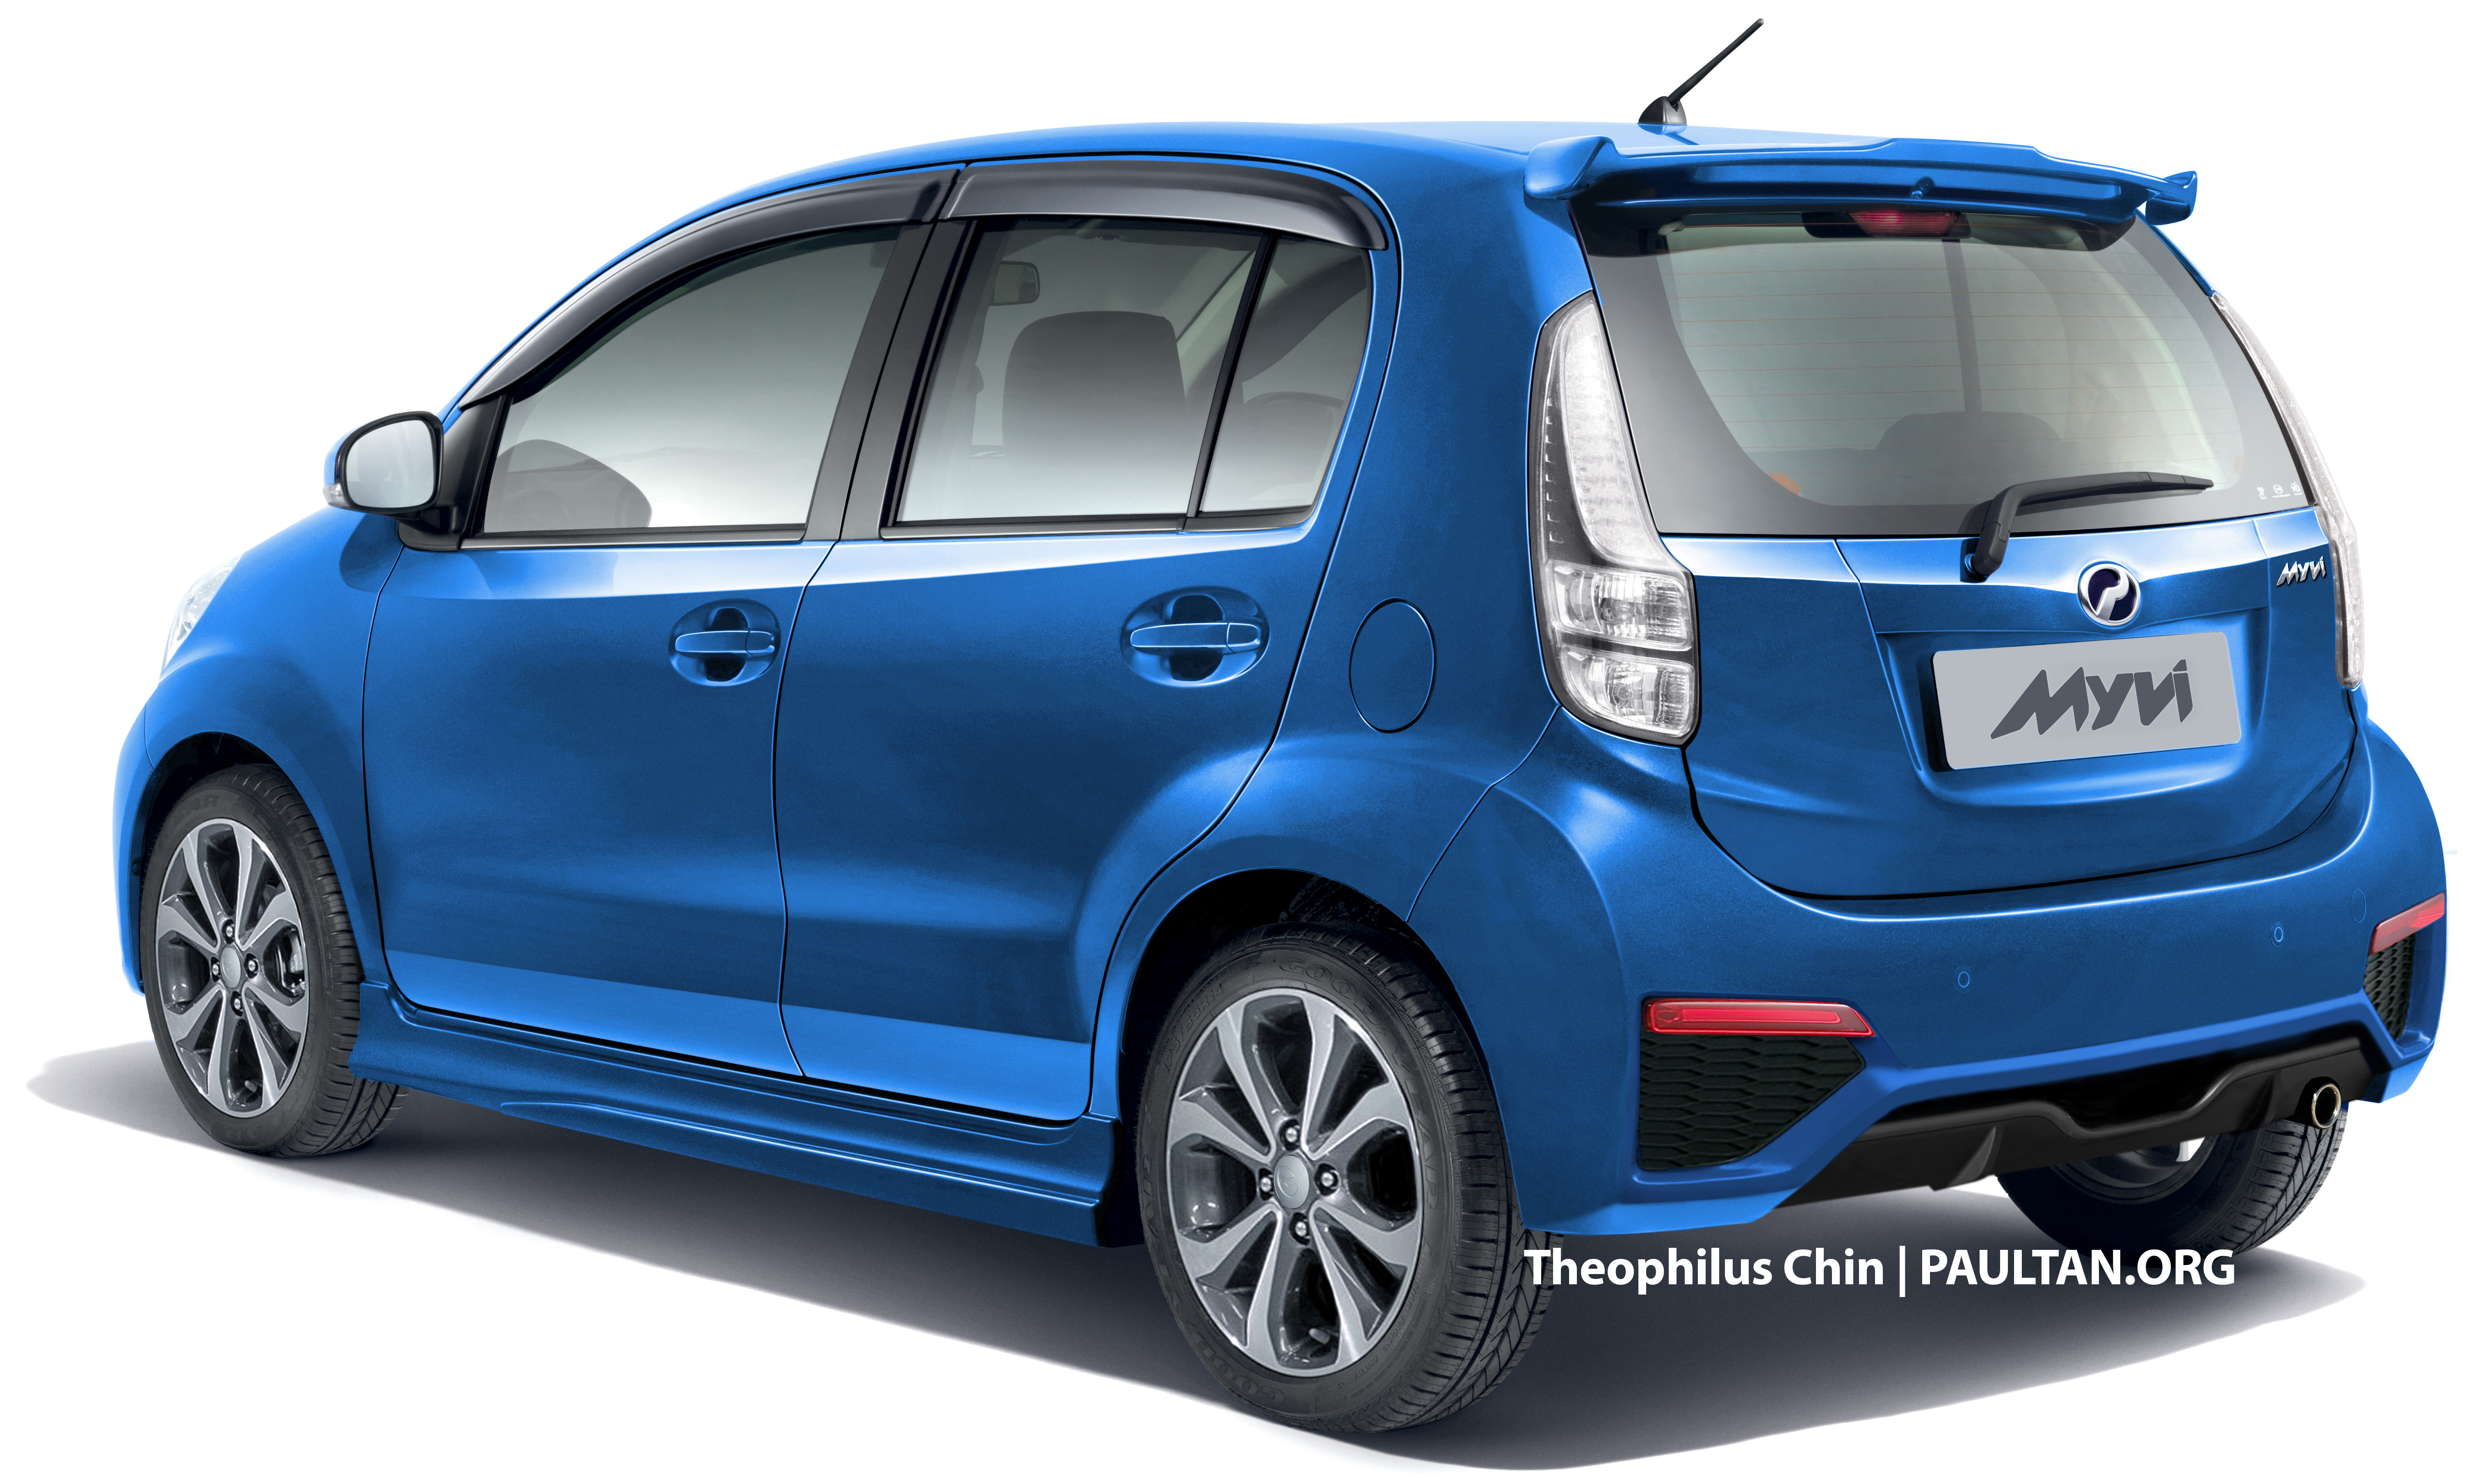 Perodua Myvi facelift rendered with new rear view